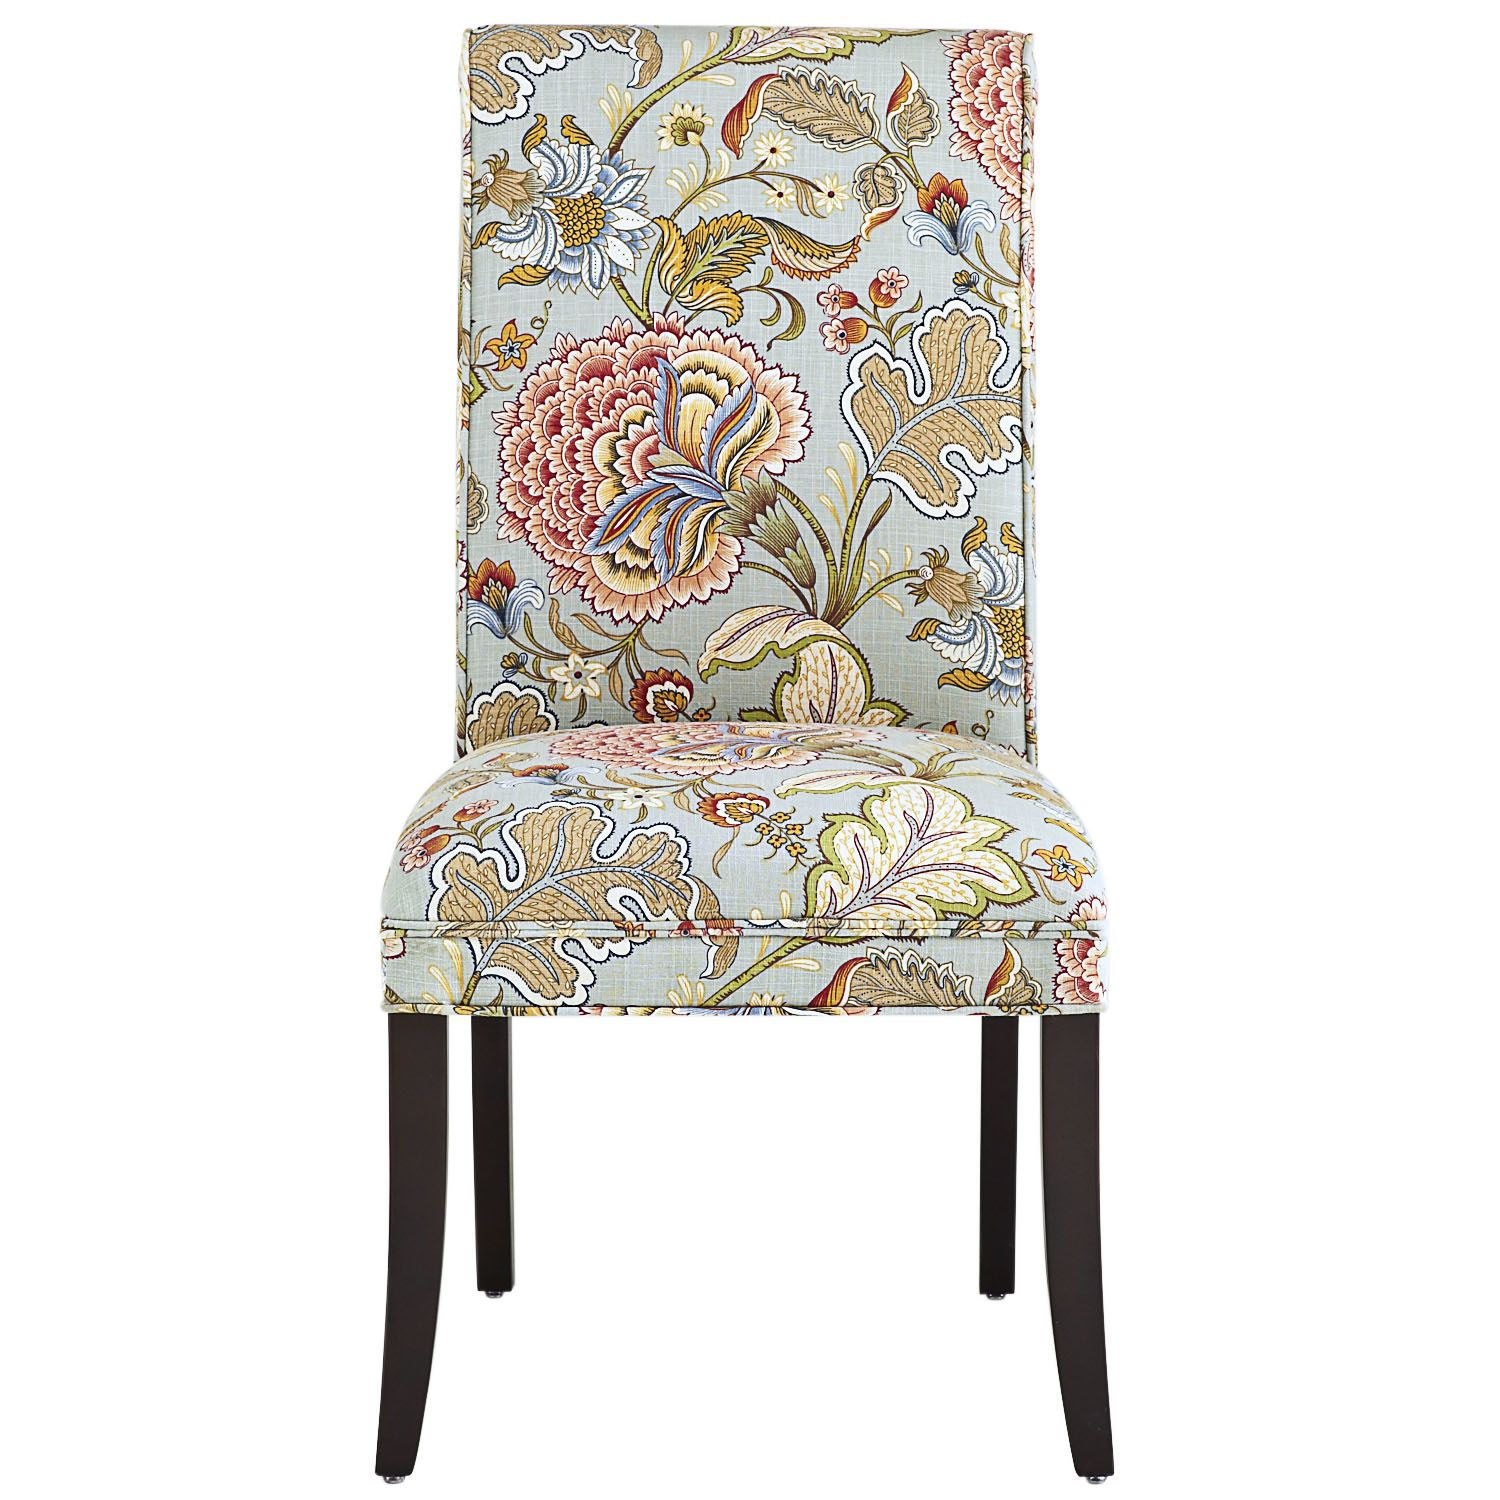 Angela Deluxe Dining Chair - Blue Meadow | Pier 1 Imports